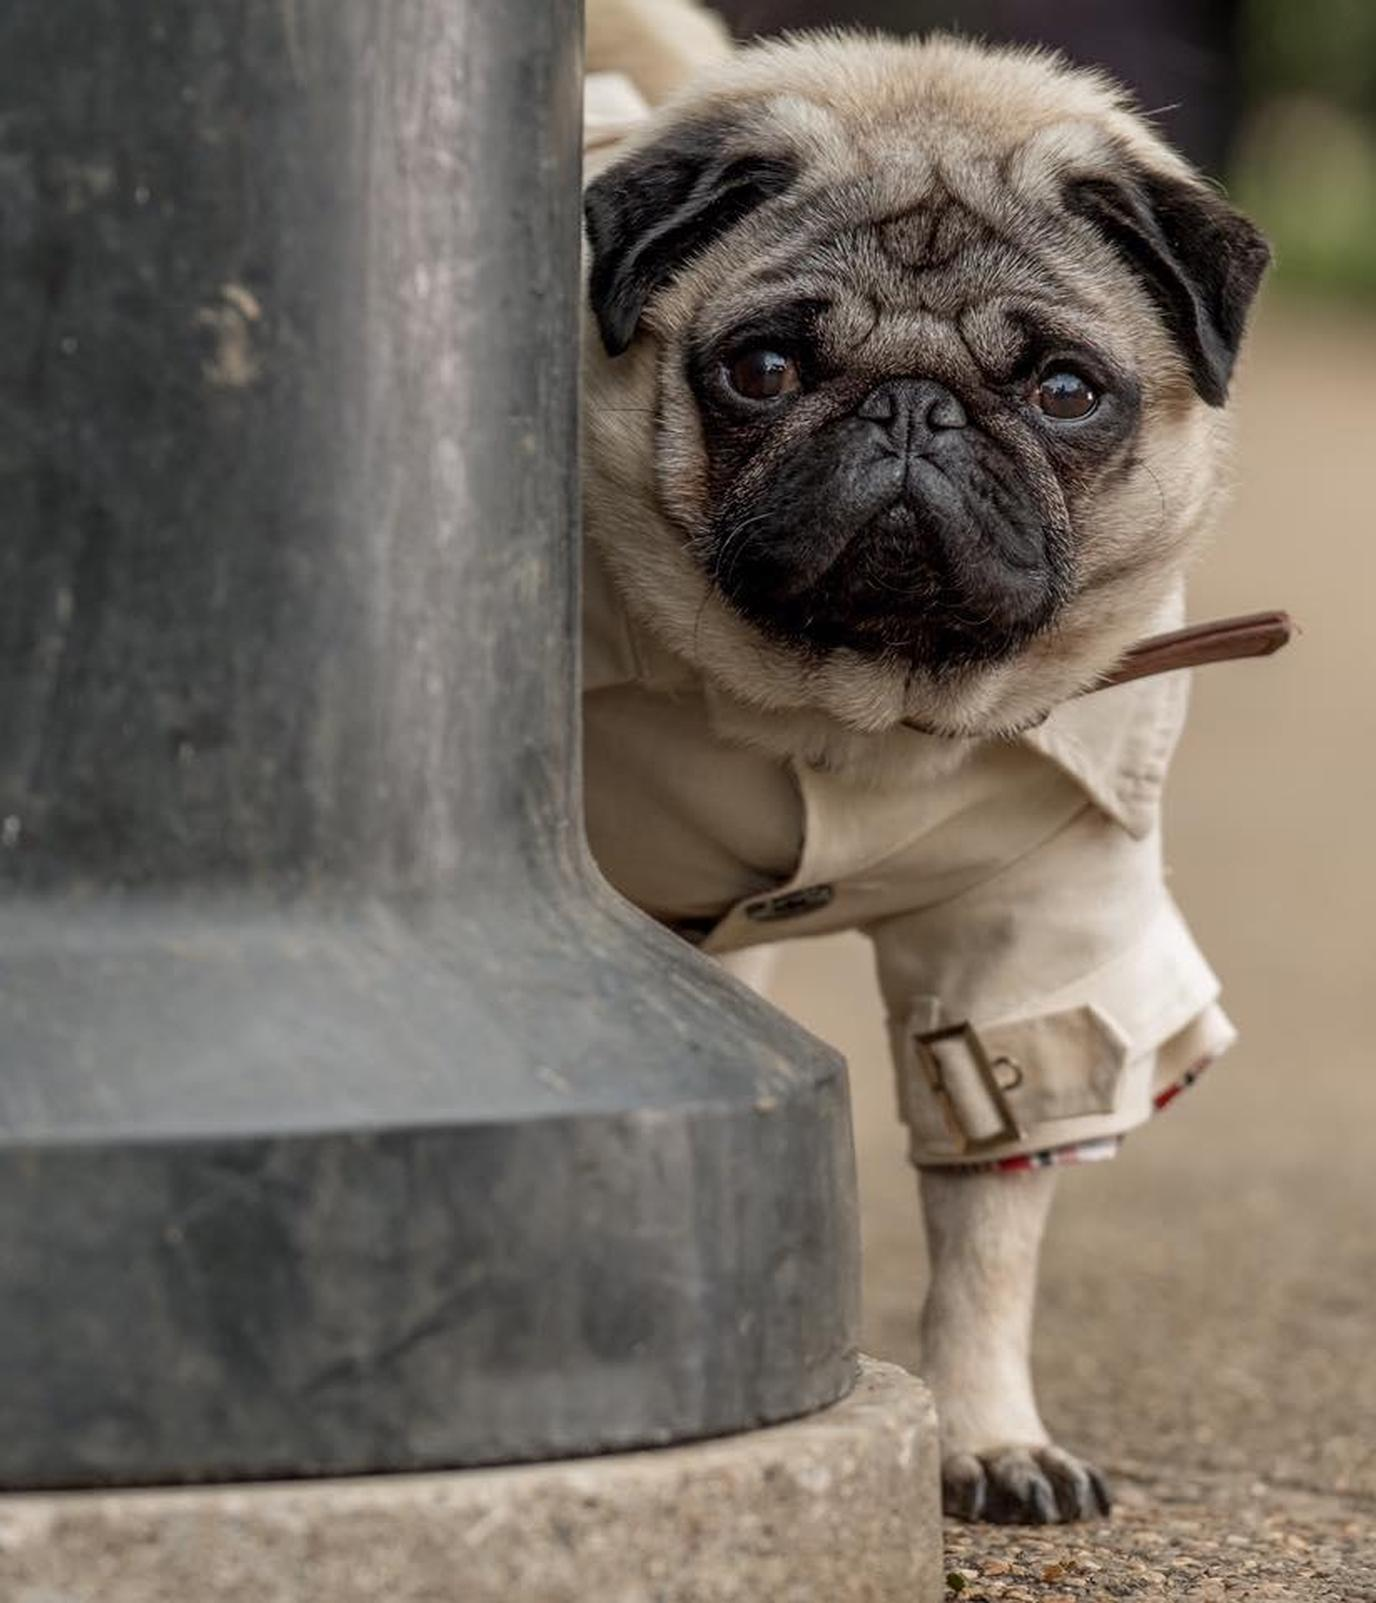 """Patrick"" is a dog movie that tells the story of a mischievous Pug."